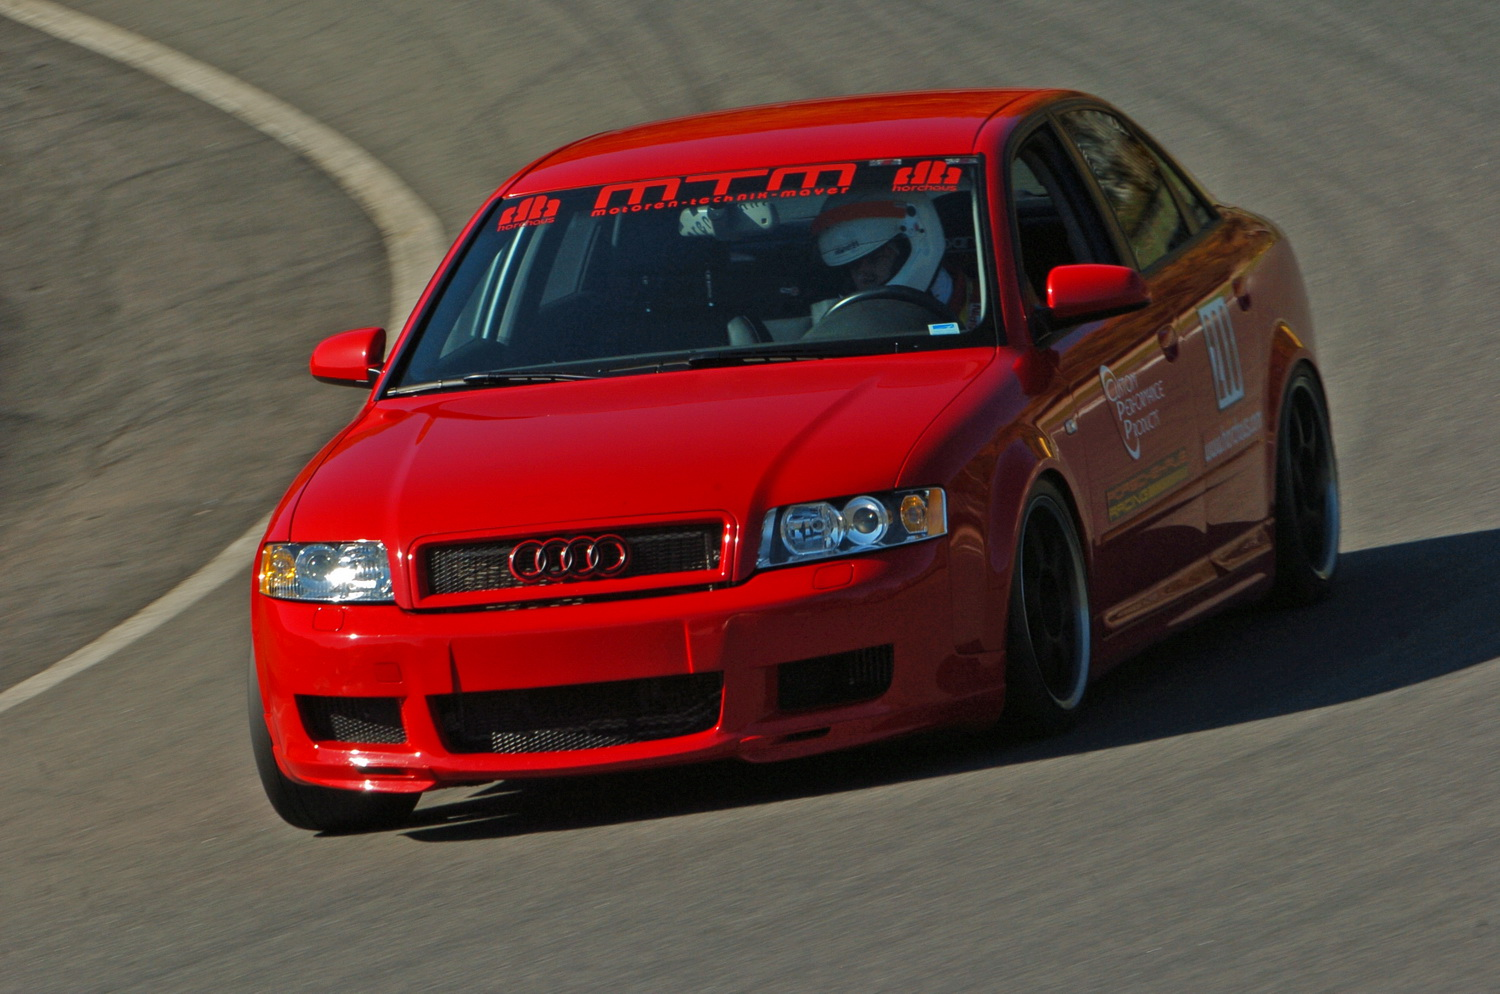 Audi audi a4 coup : 2004 Audi A4 1.8T Quattro 1/4 mile trap speeds 0-60 - DragTimes.com